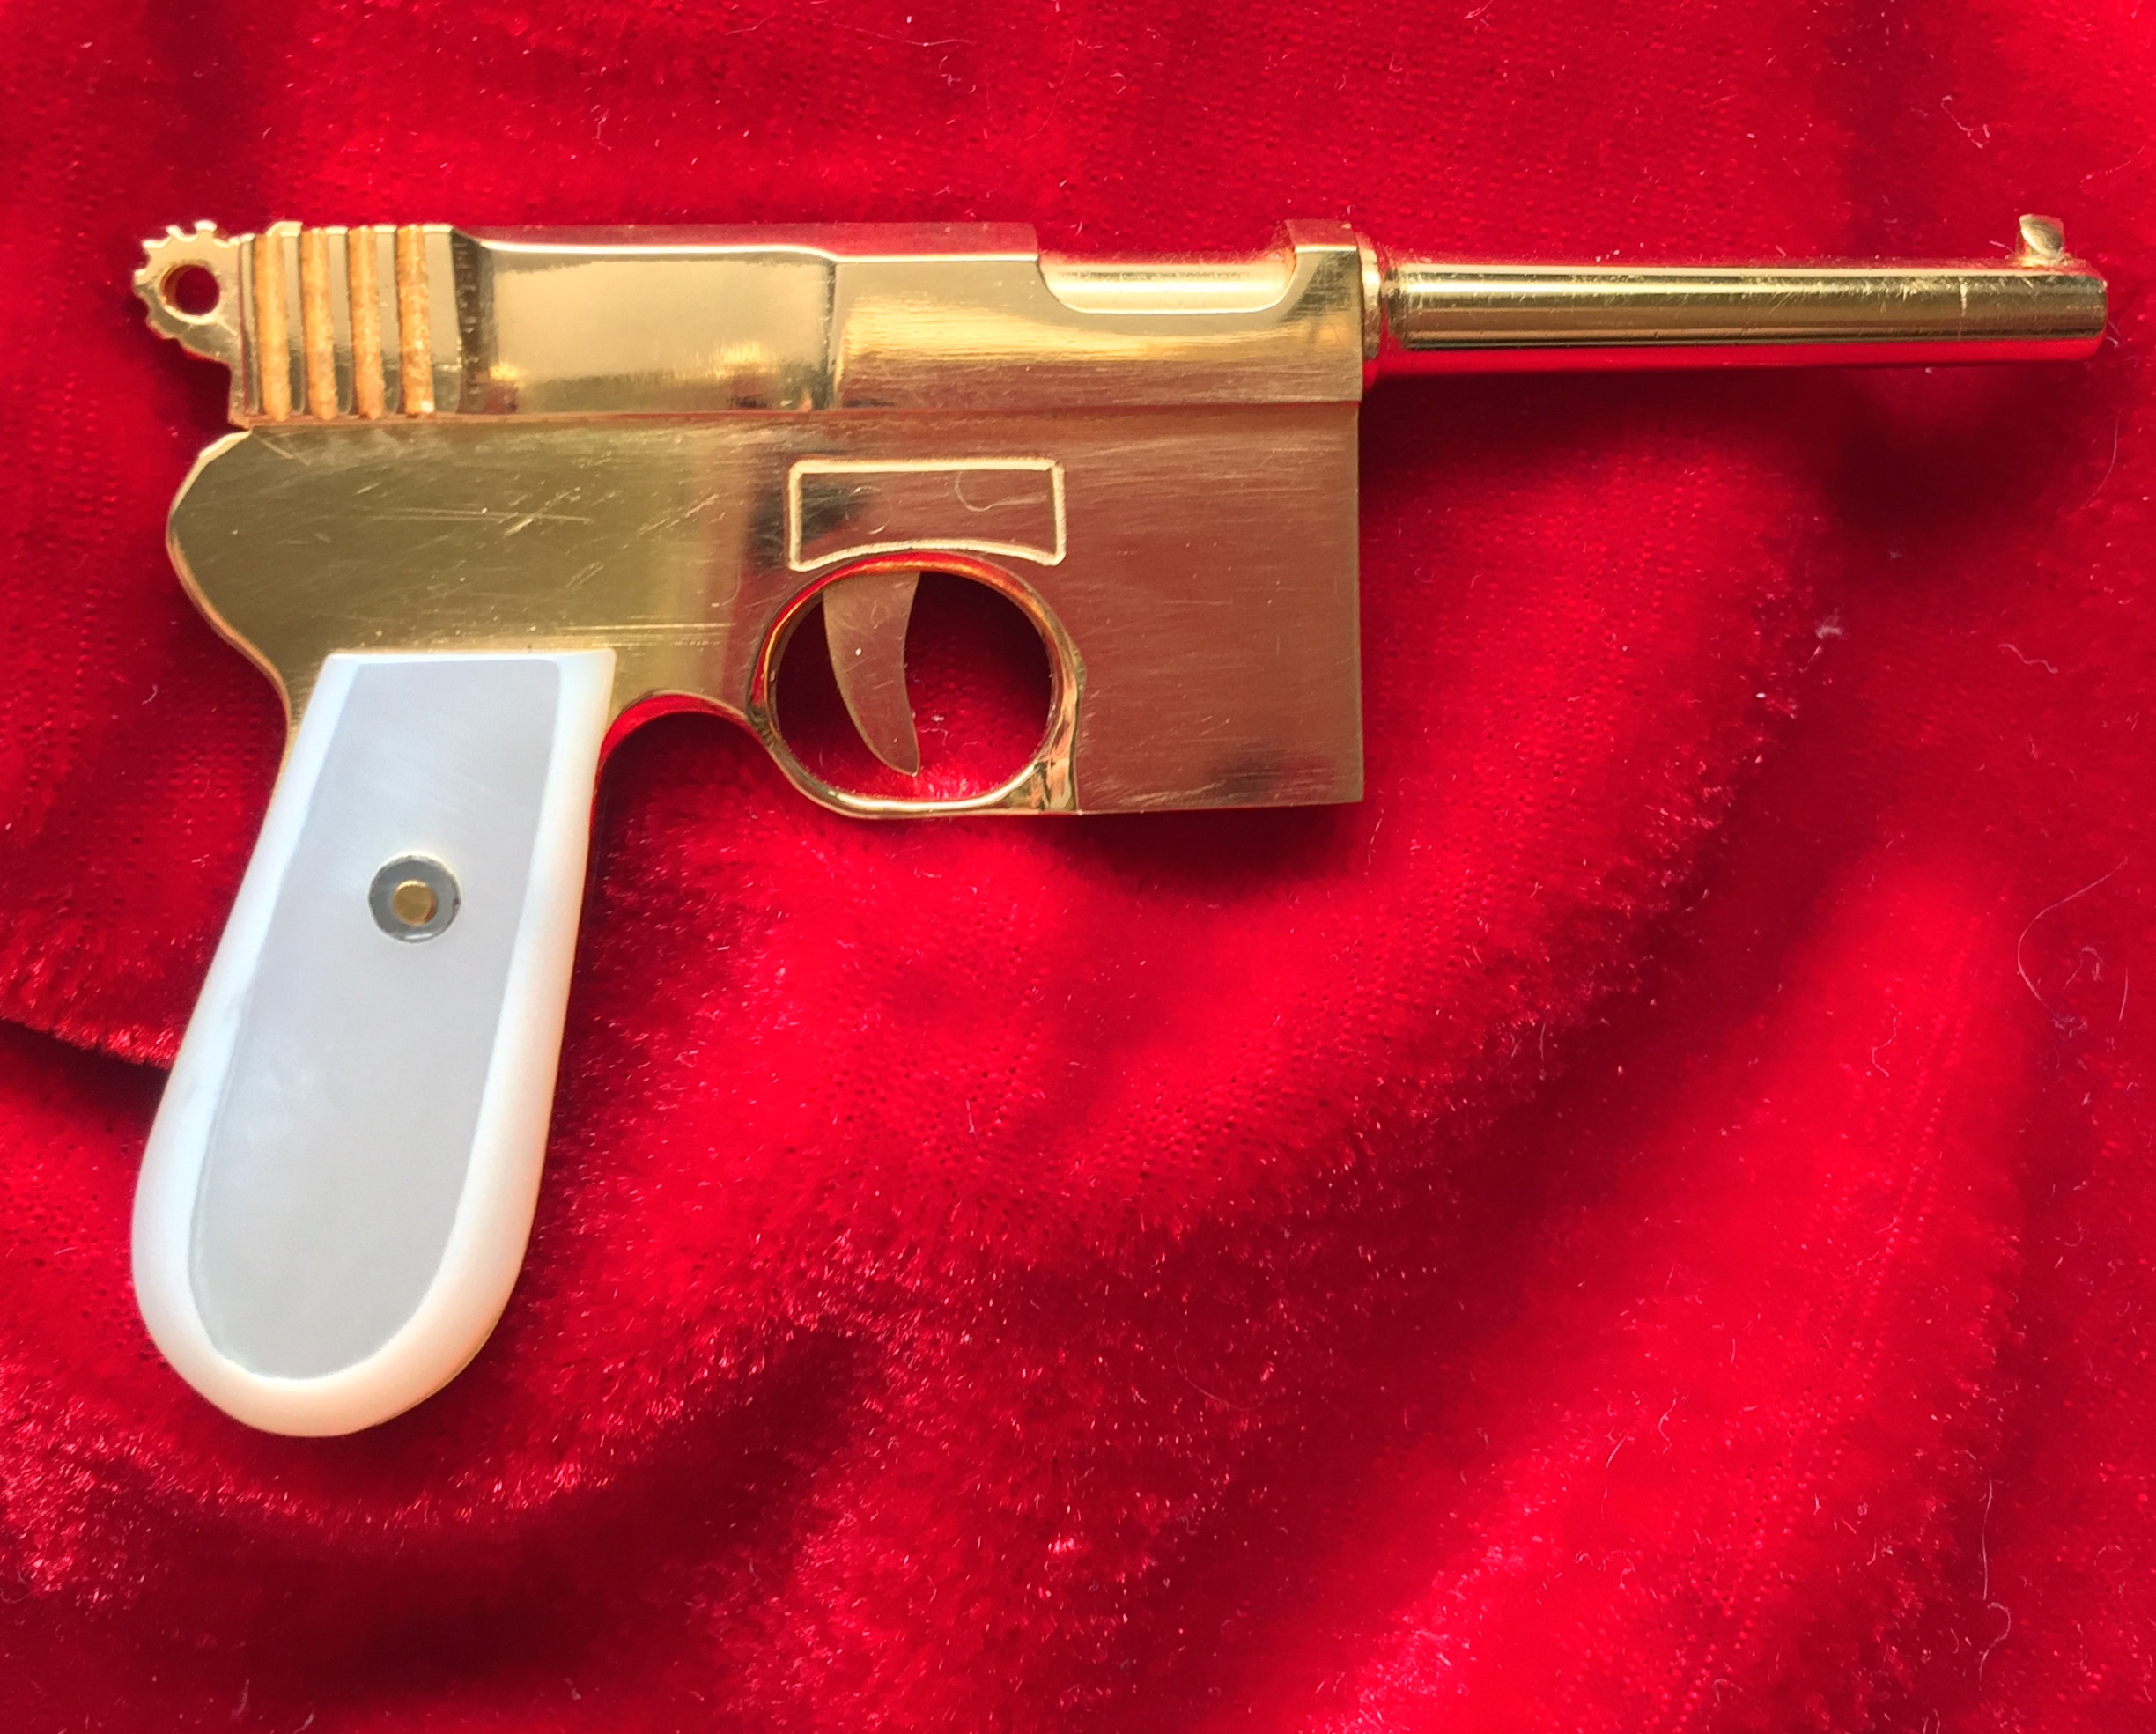 BROOMSTICK MAUSER 24K GOLD-PLATED-2mm Pinfire Gun